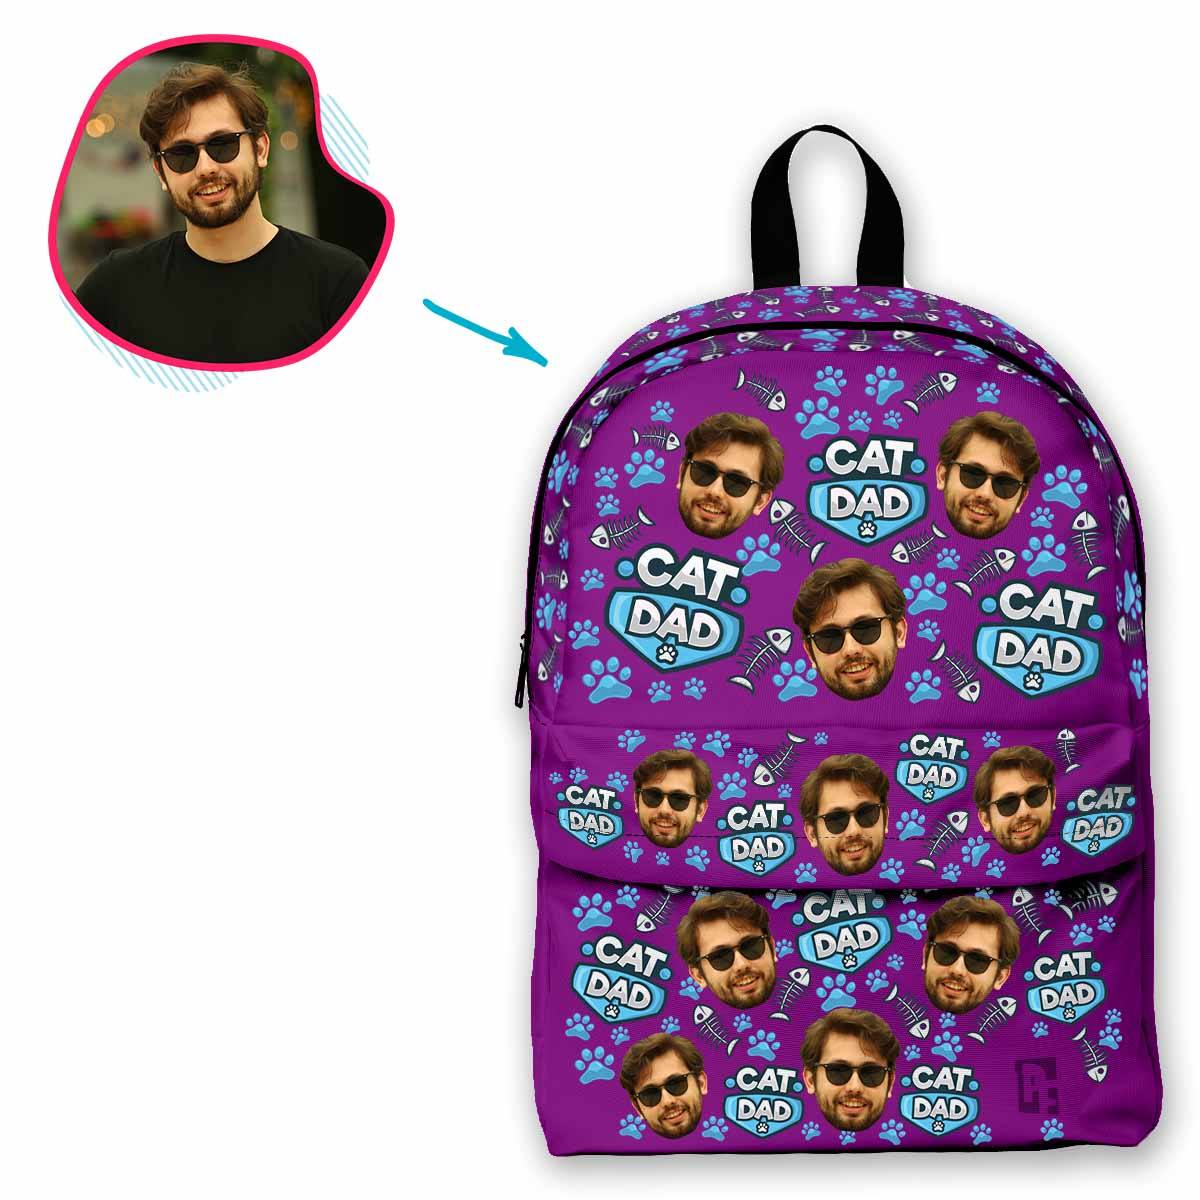 purple Cat Dad classic backpack personalized with photo of face printed on it